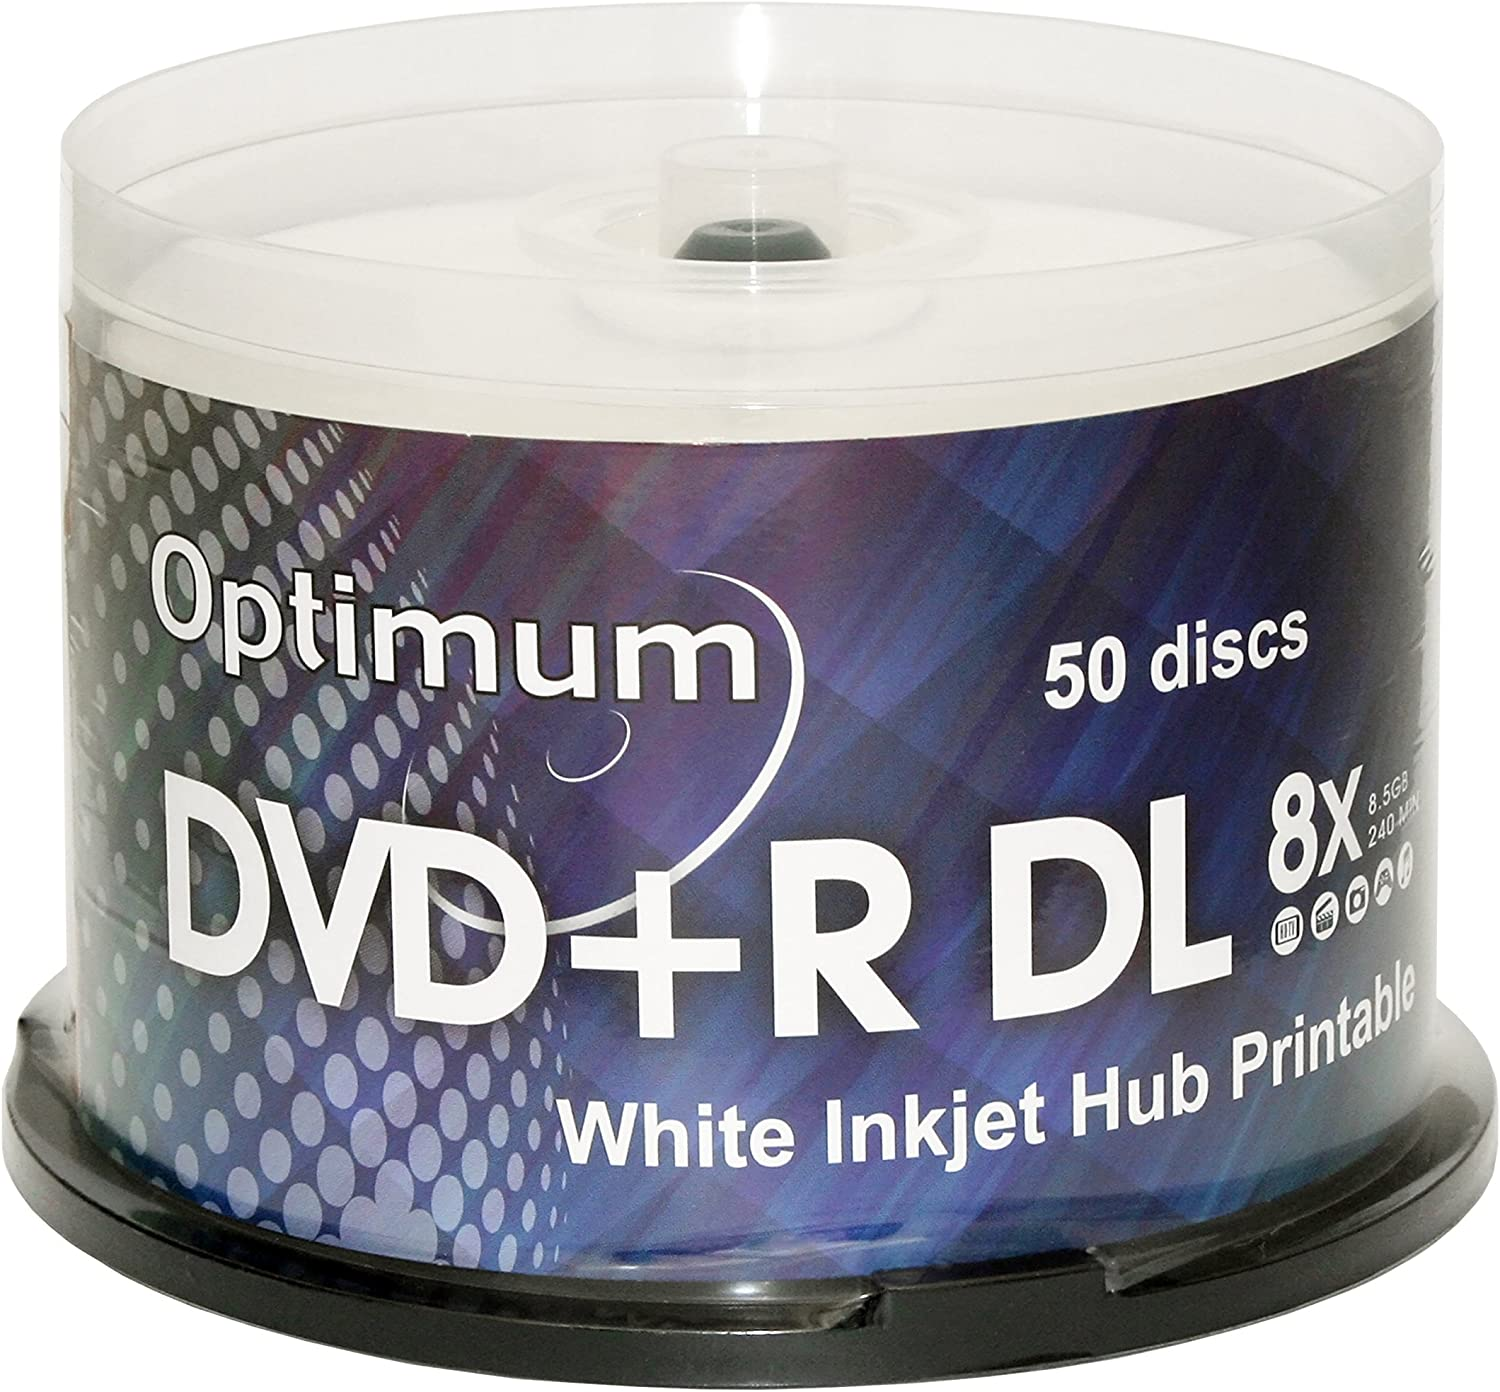 Optimum DVD+R DL Double Layer 8X White Inkjet Printable 50pk in Spindle Cake Box